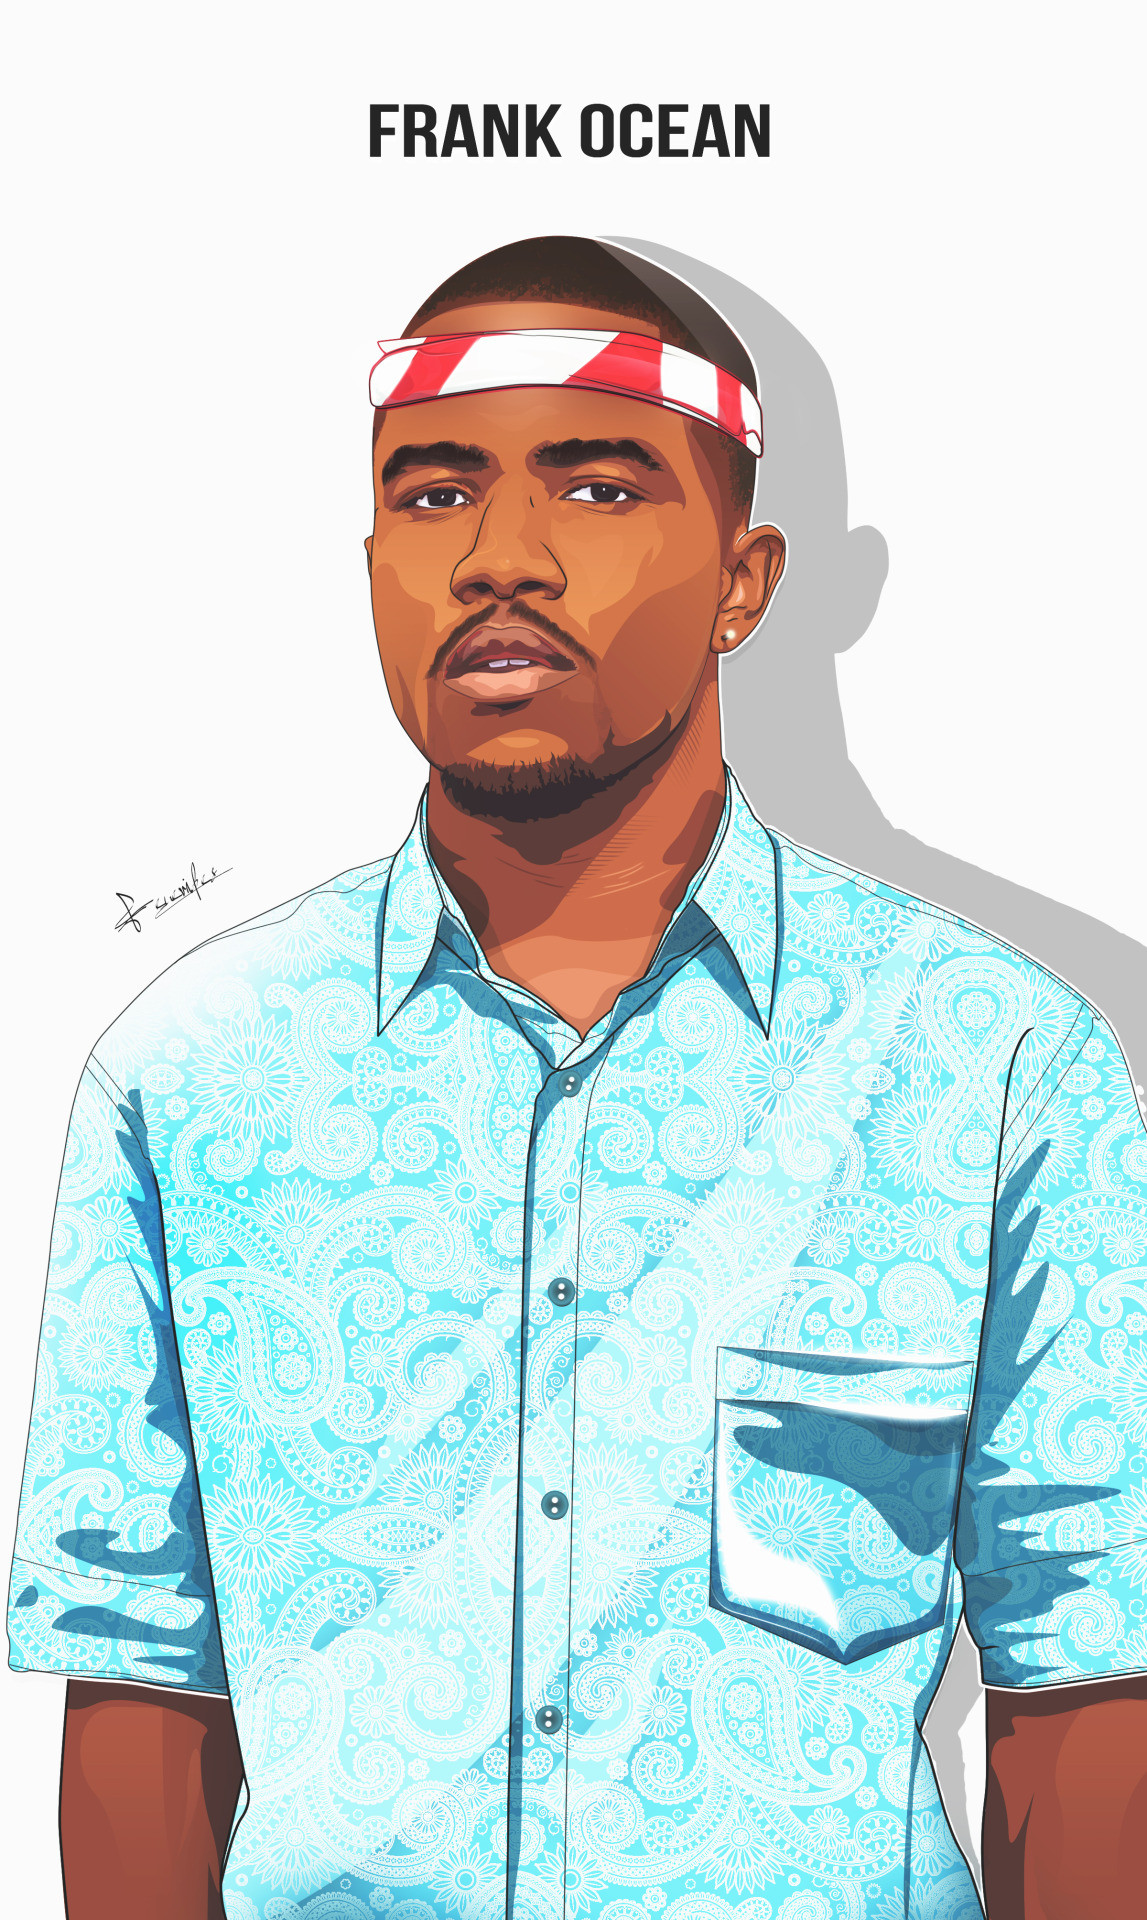 Inspriational Quotes Wallpaper For Mac Frank Ocean Wallpapers 85 Images